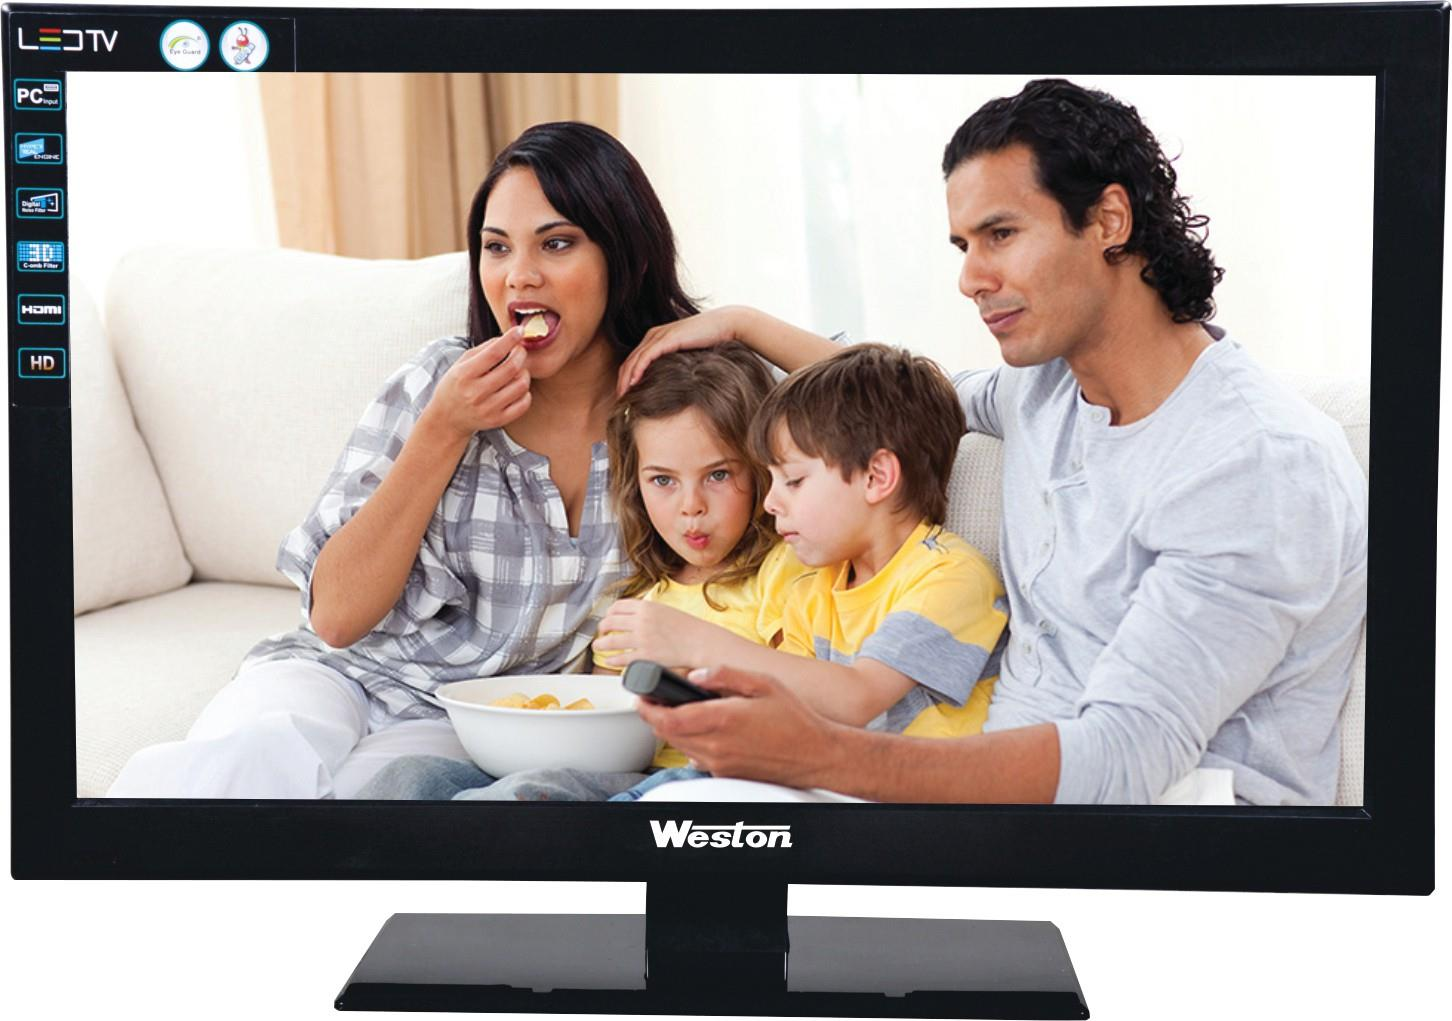 Weston LED2200 56 cm (22) LED TV (HD Ready) Image